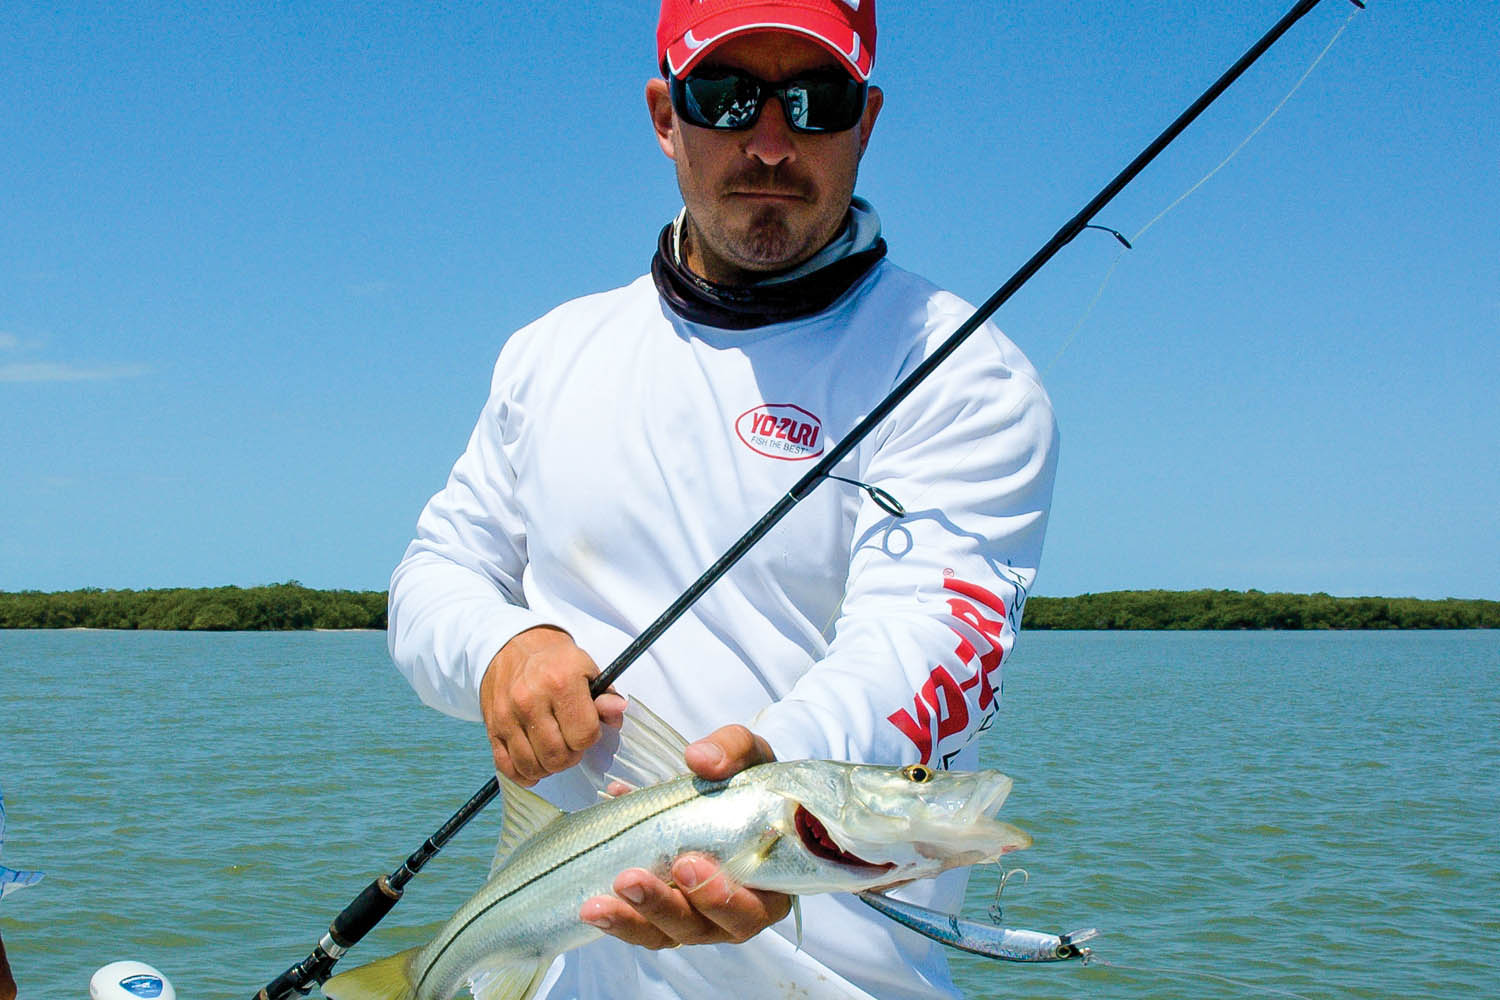 Chris Bishop from Yo-Zuri shows off one of many snook caught during Mangrove Madness.